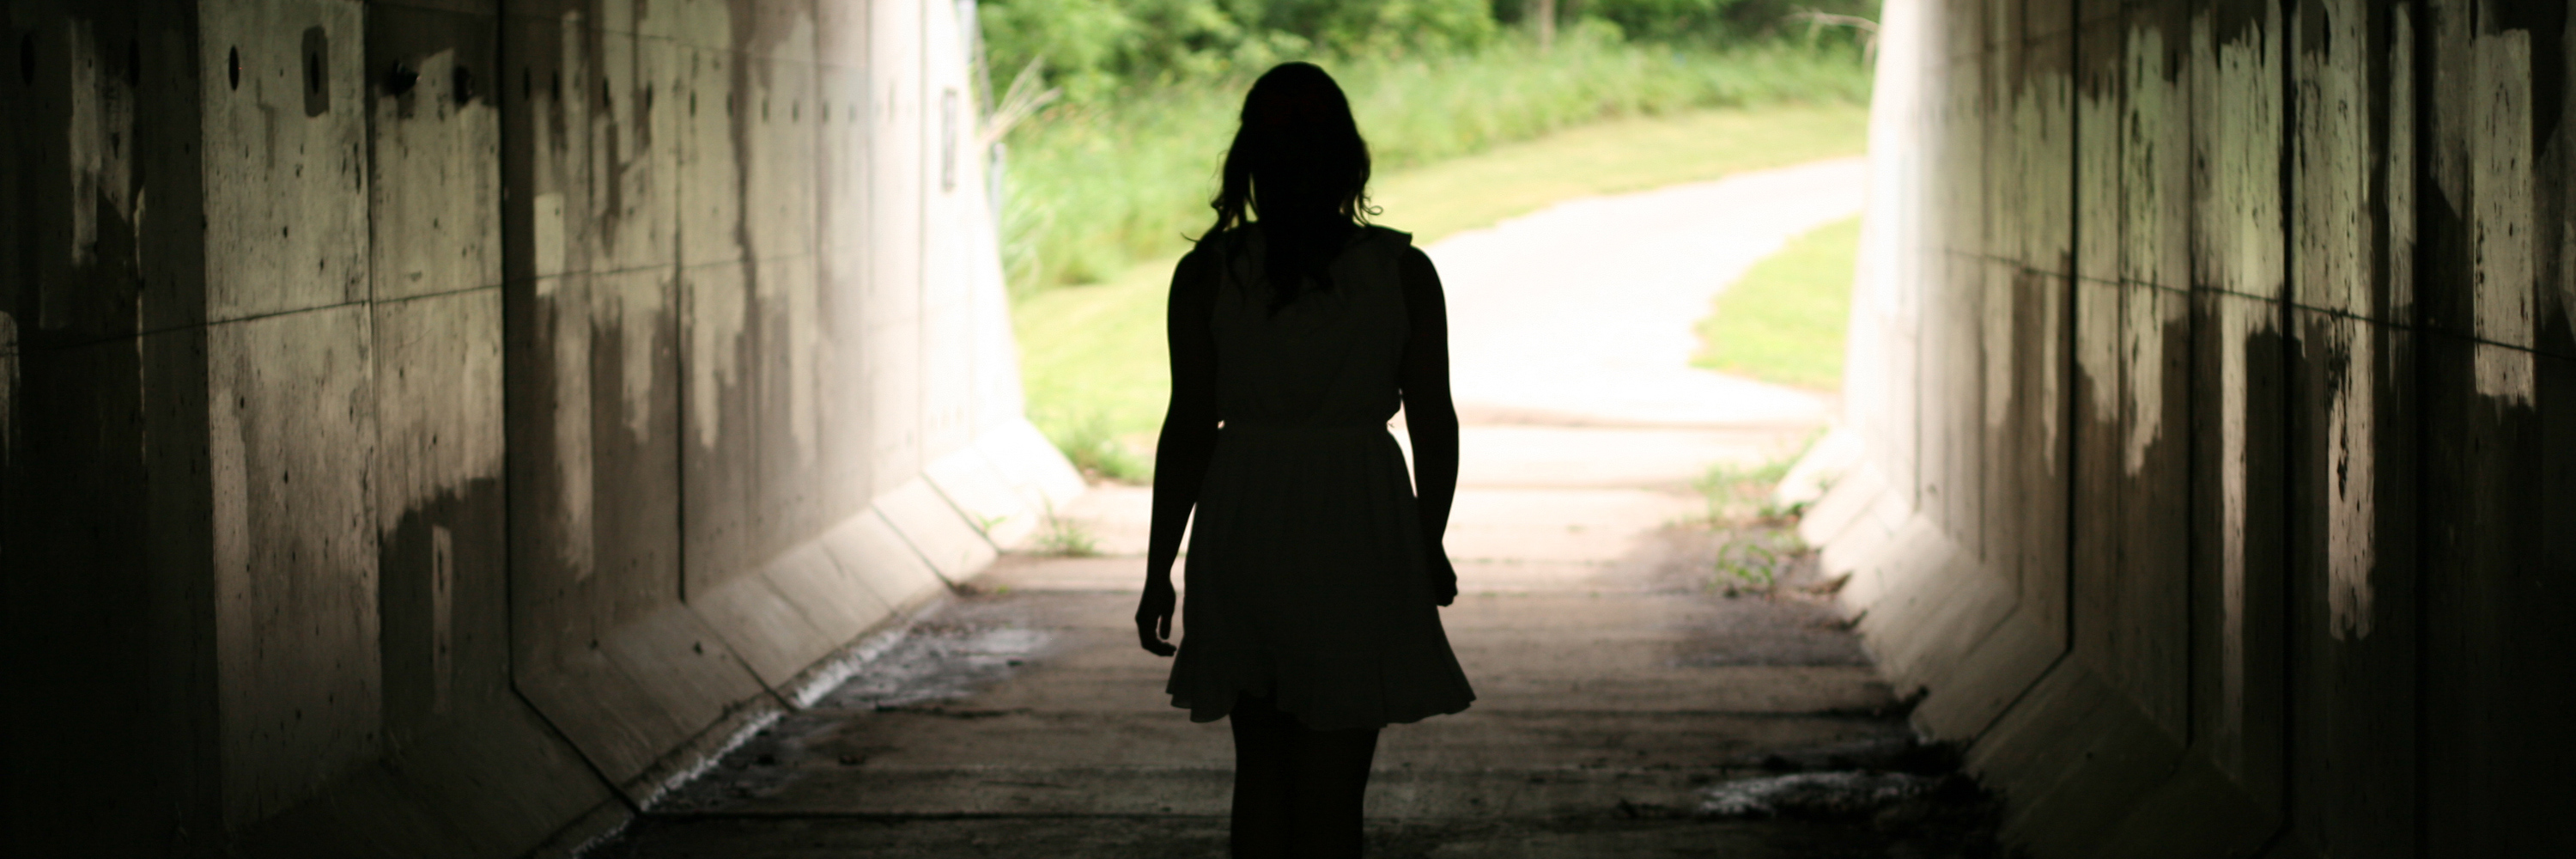 young woman walking through tunnel with light and trees at end